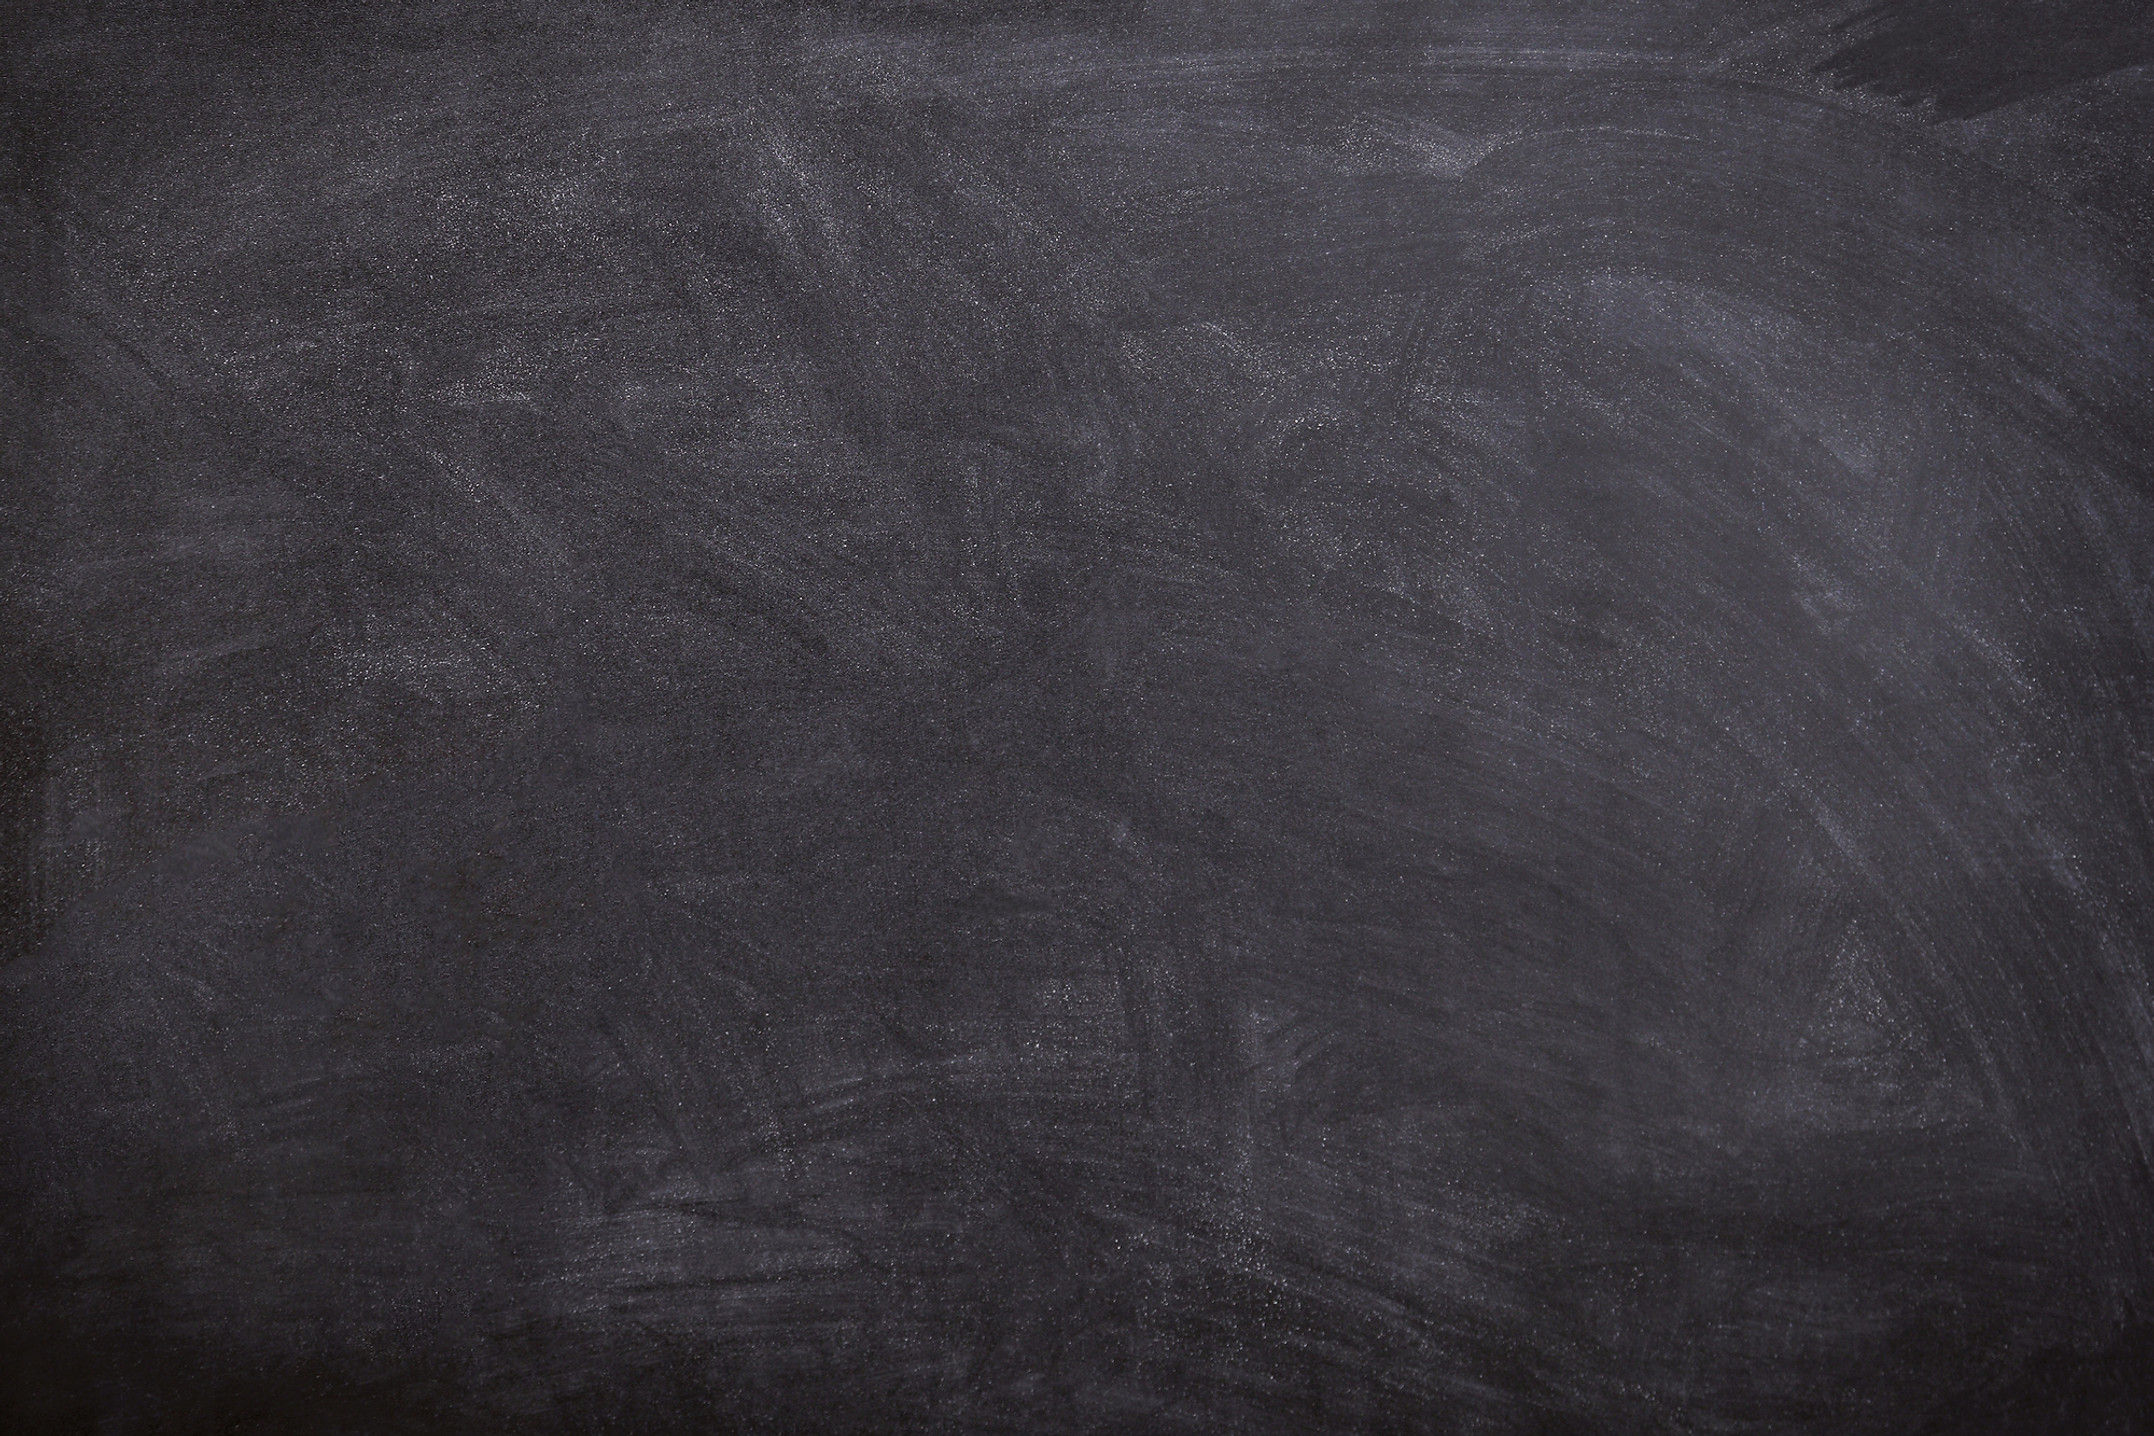 Canva - Chalkboard Texture Background.jp